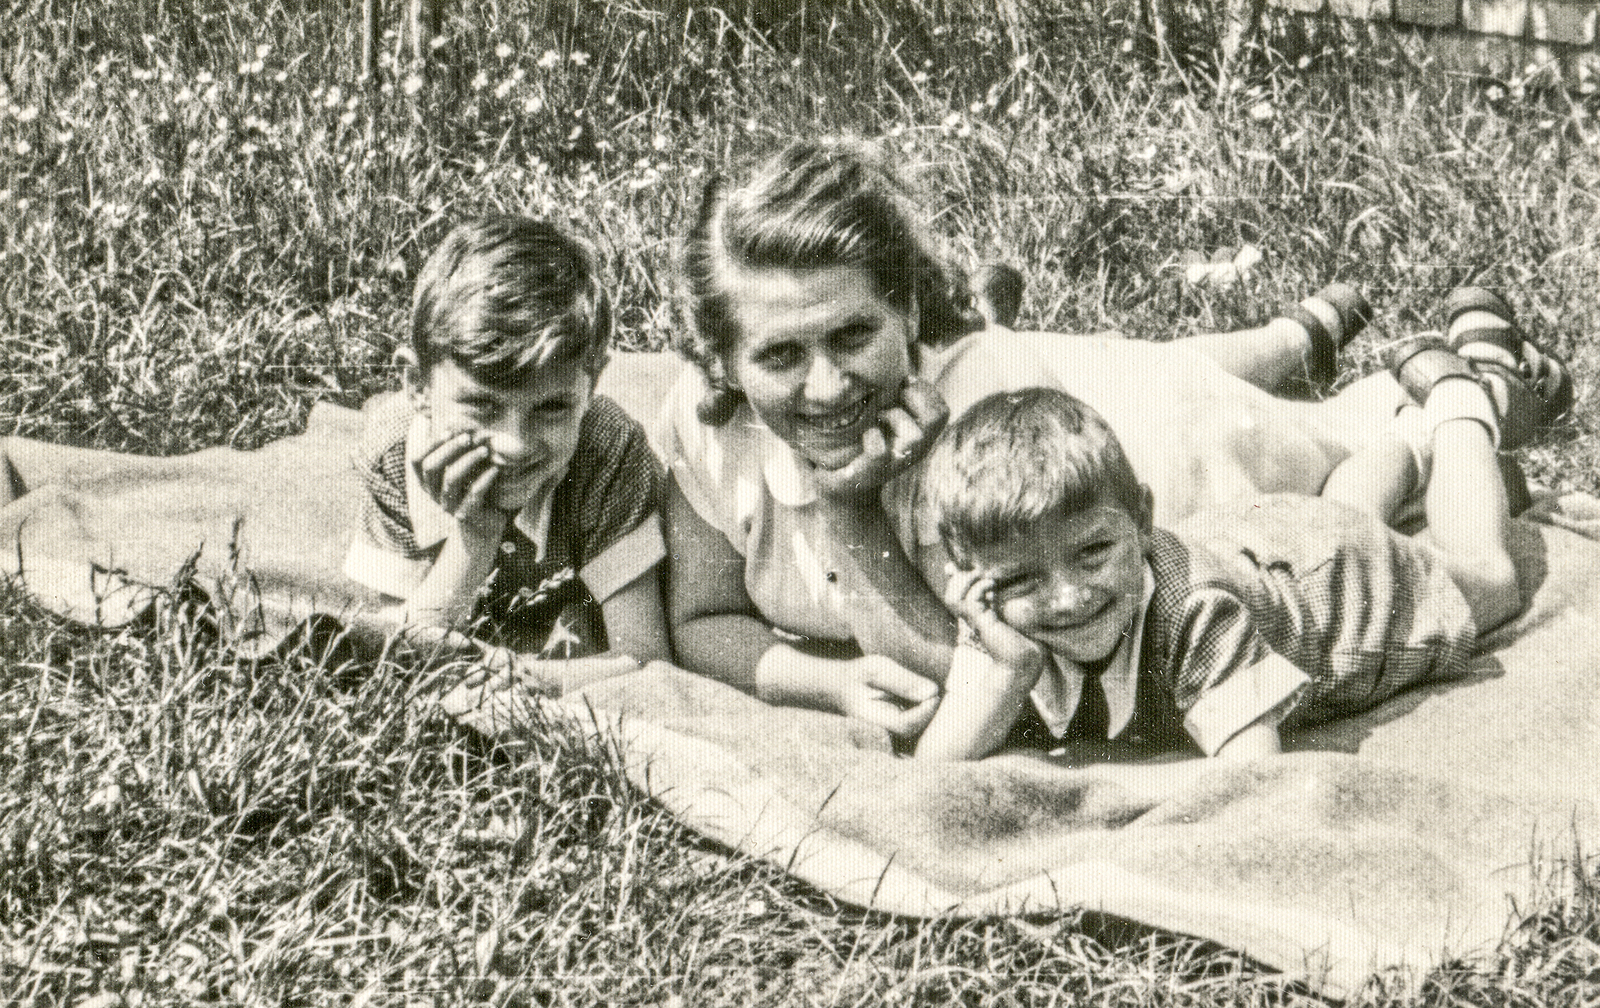 So you've got just one treasured photo—start there! What memories does it spark?